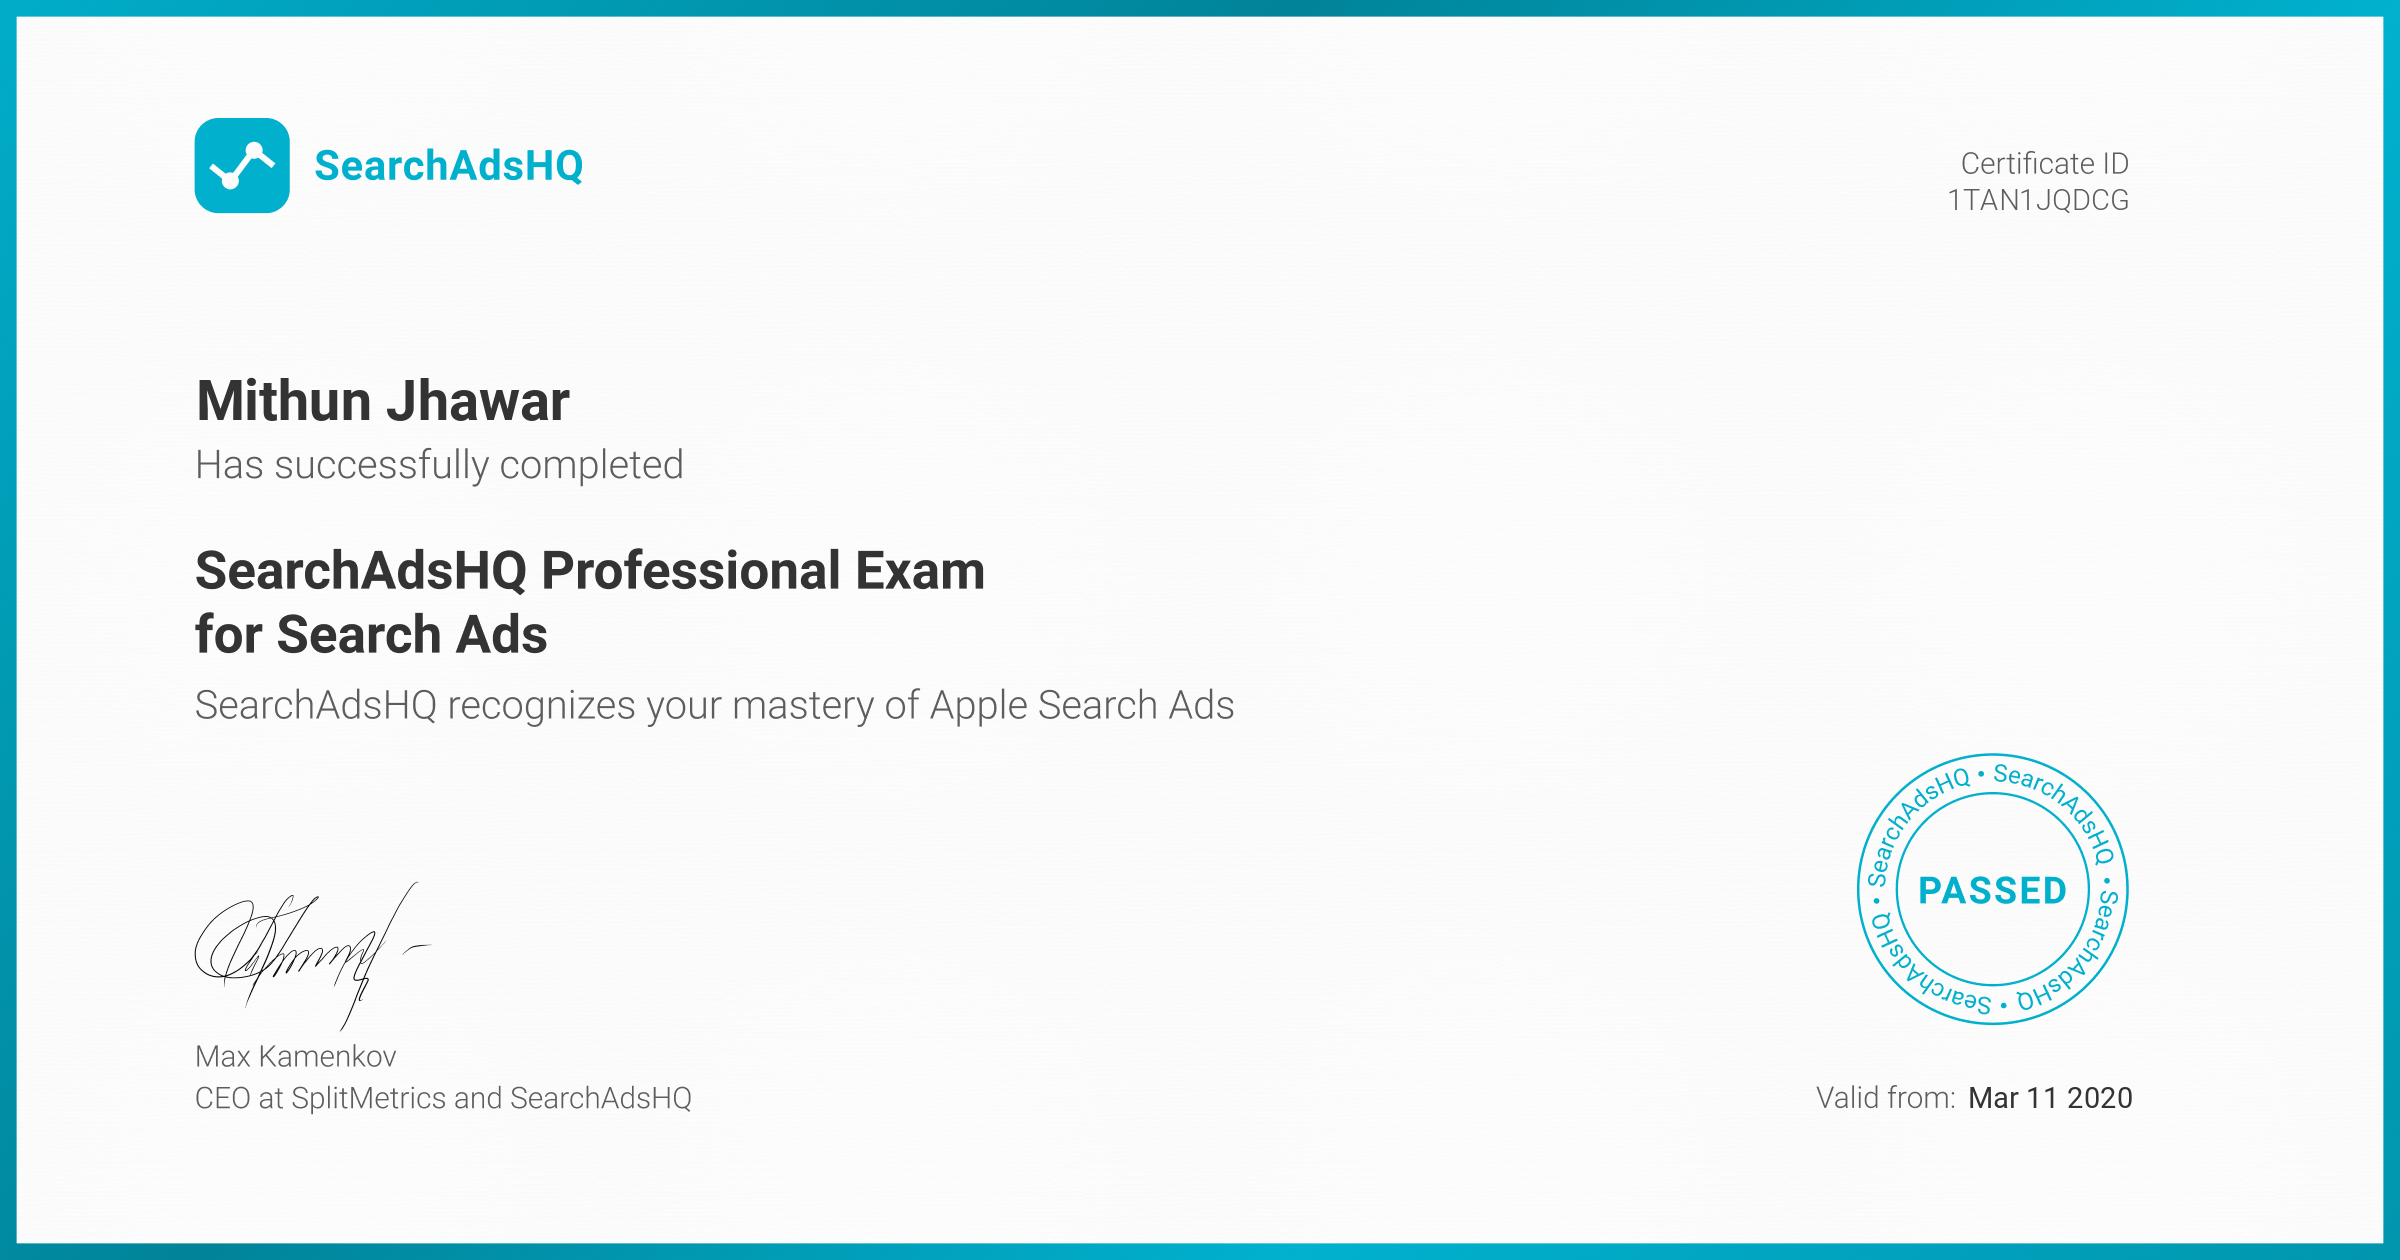 Certificate for Mithun Jhawar | SearchAdsHQ Professional Exam for Search Ads